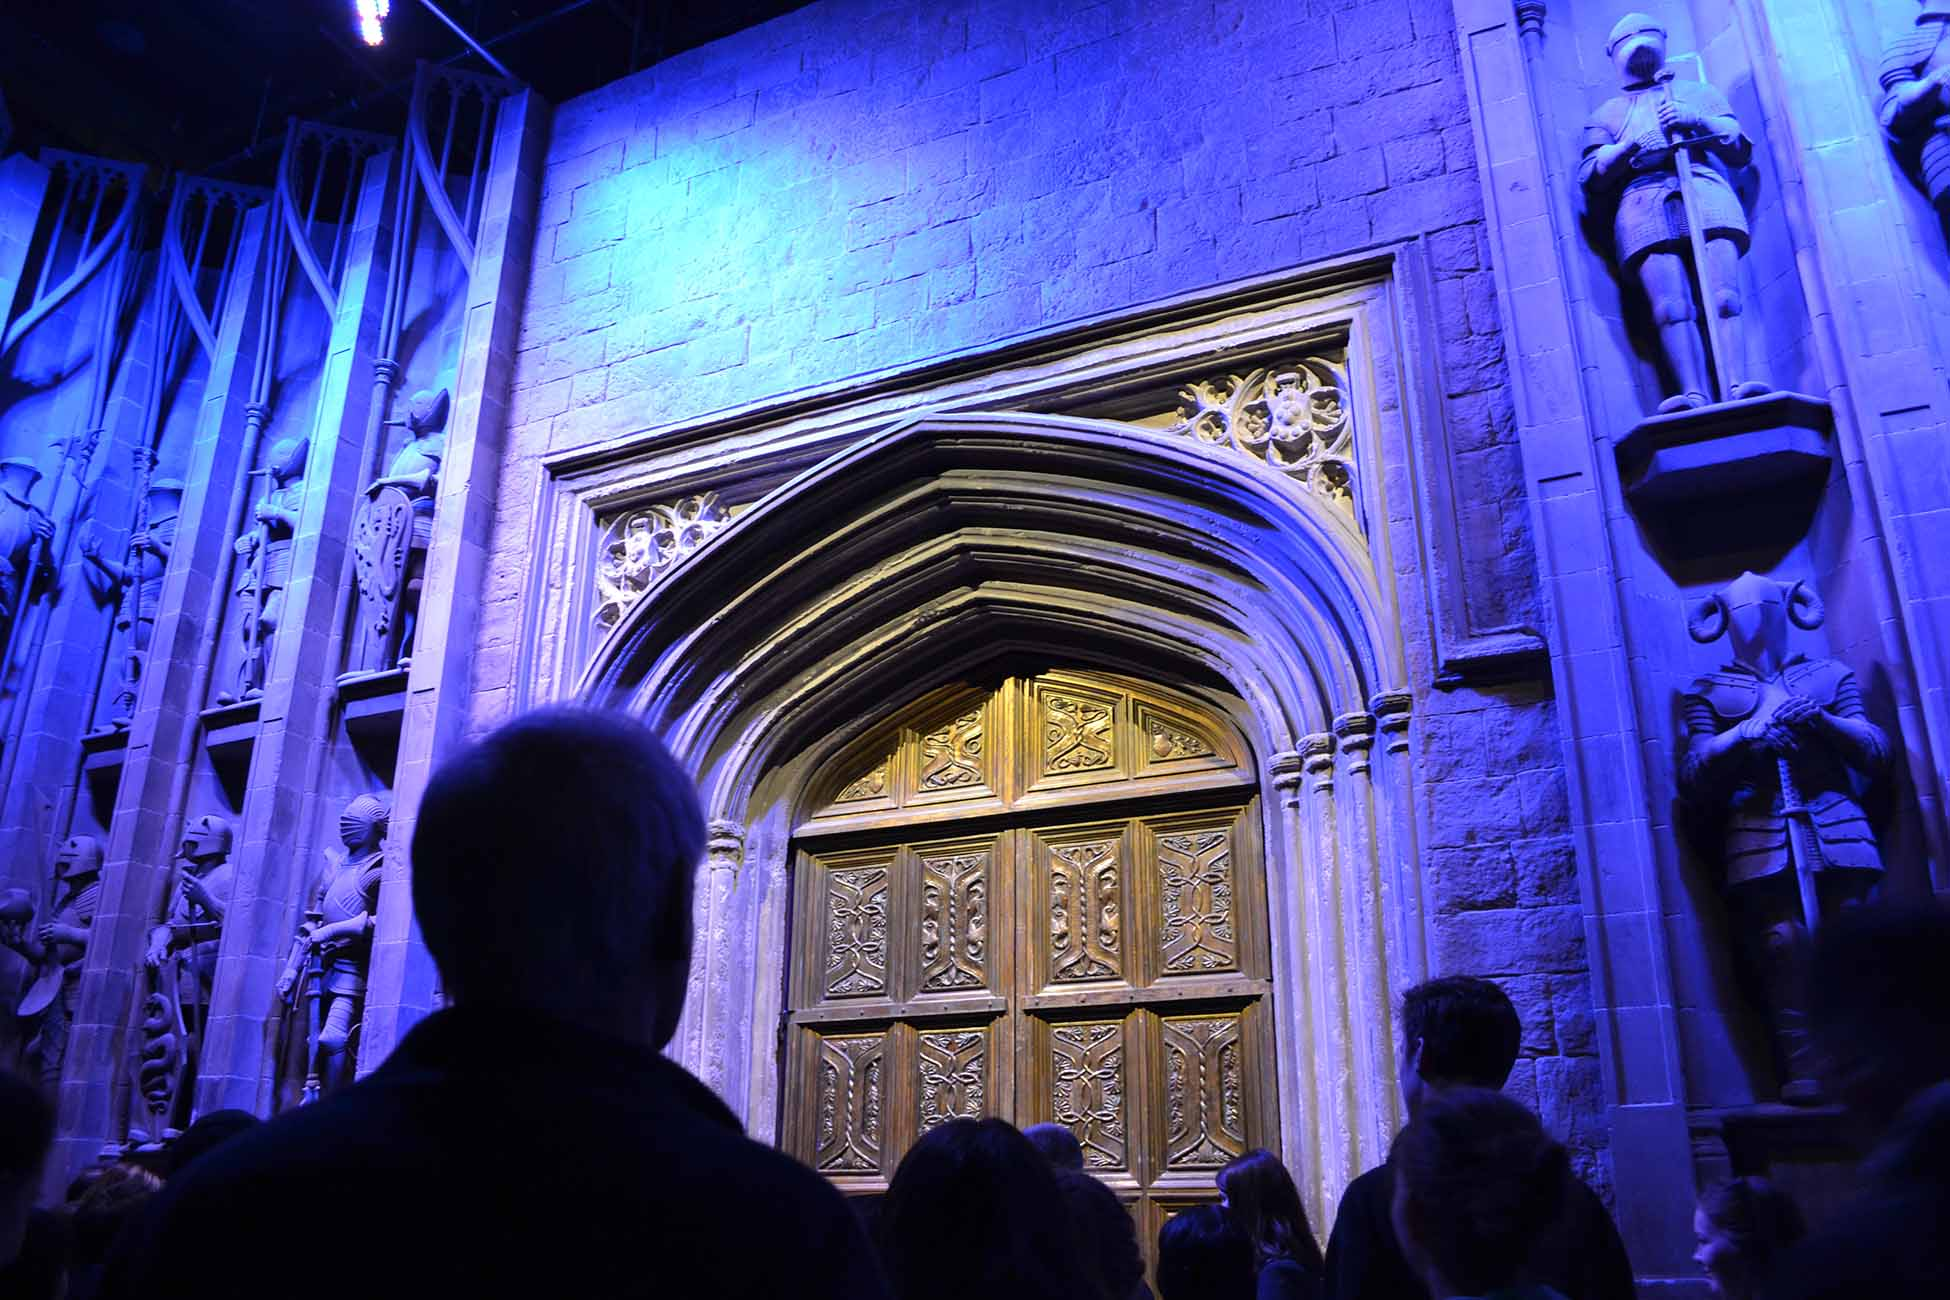 Inicio del Harry Potter Studio Tour en Londres